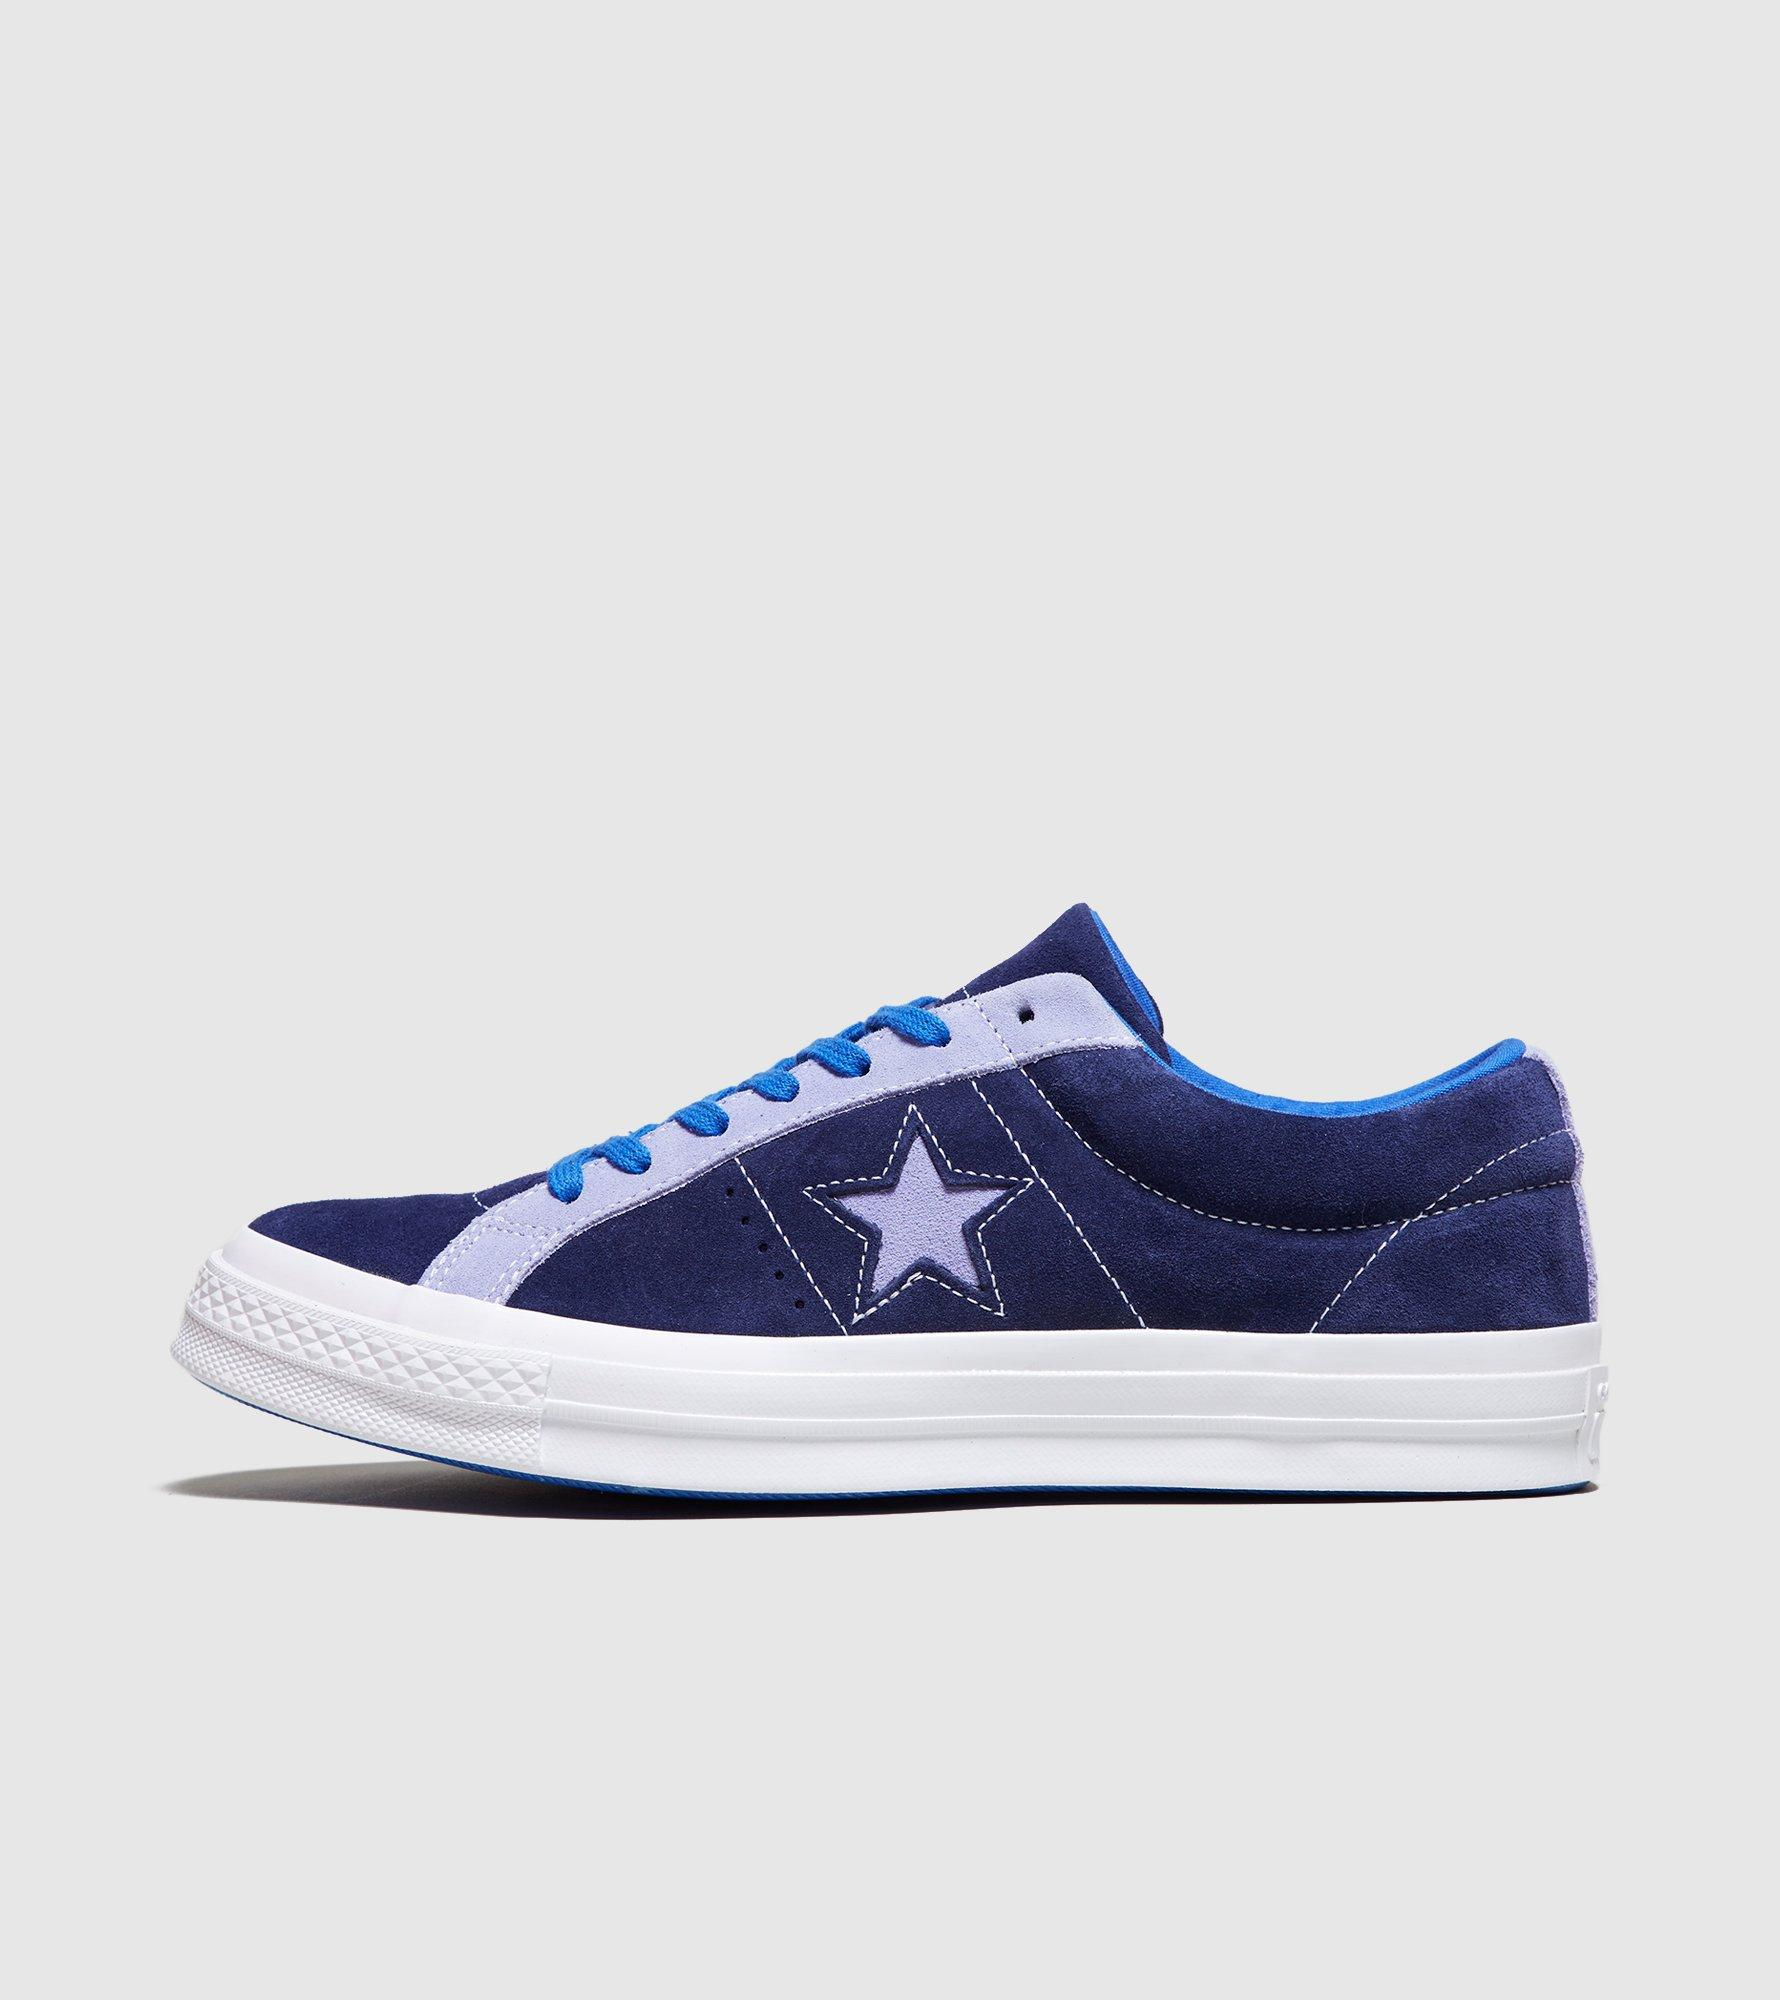 be06f4ec39ea2a Converse One Star 74 in Blue for Men - Lyst